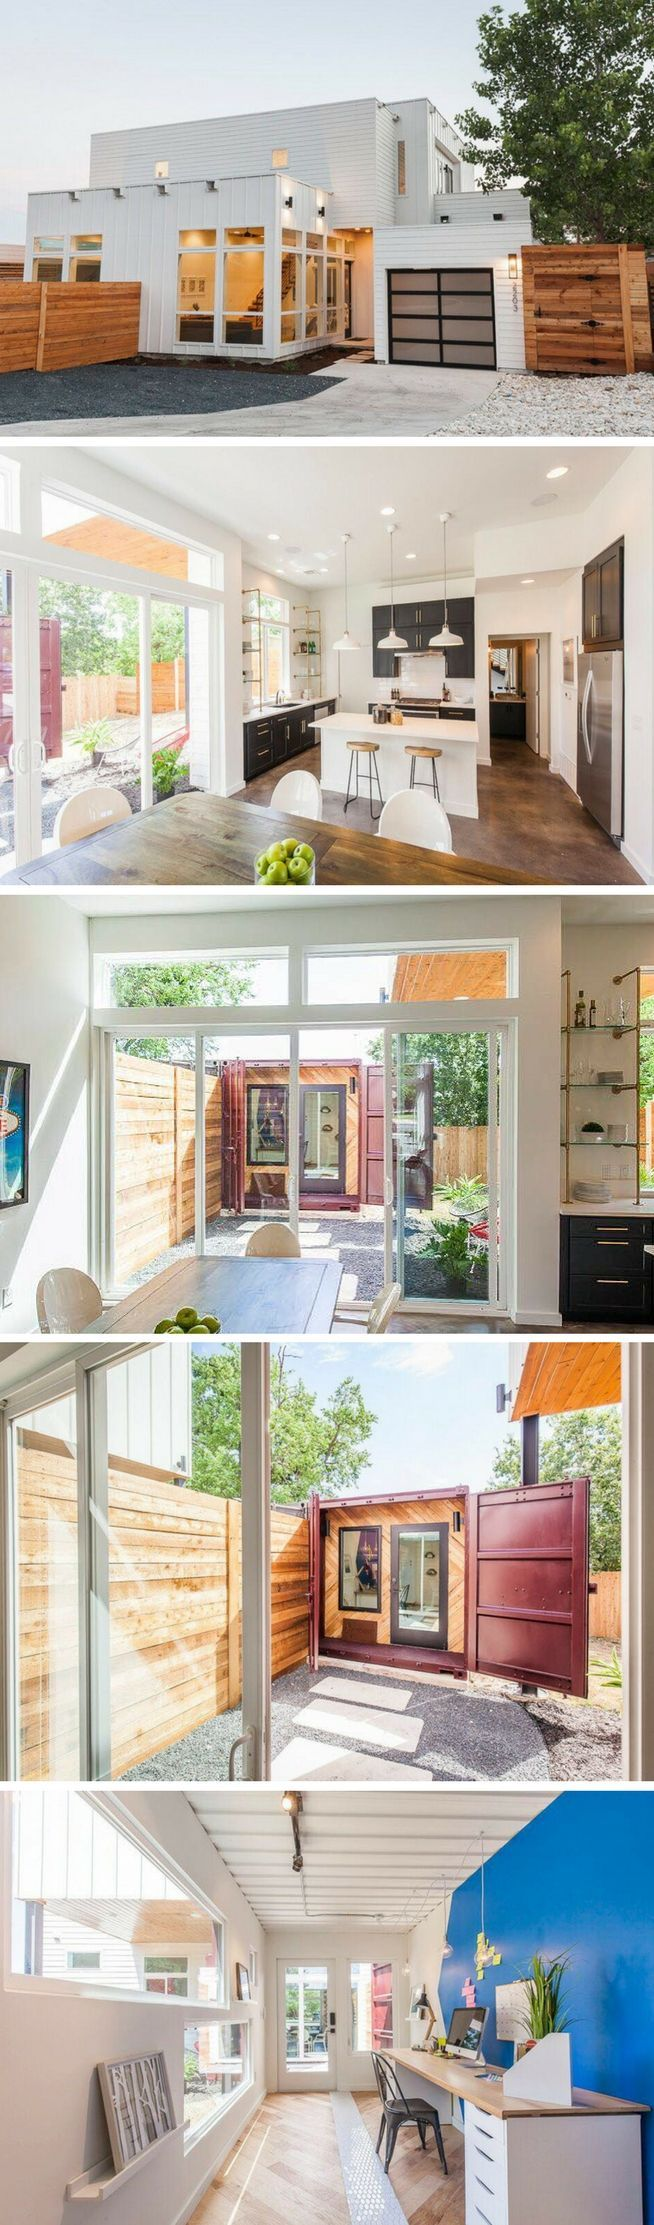 17 b sta id er om container hus p pinterest containerbost der och container hus - Most beautiful shipping container guest house ...